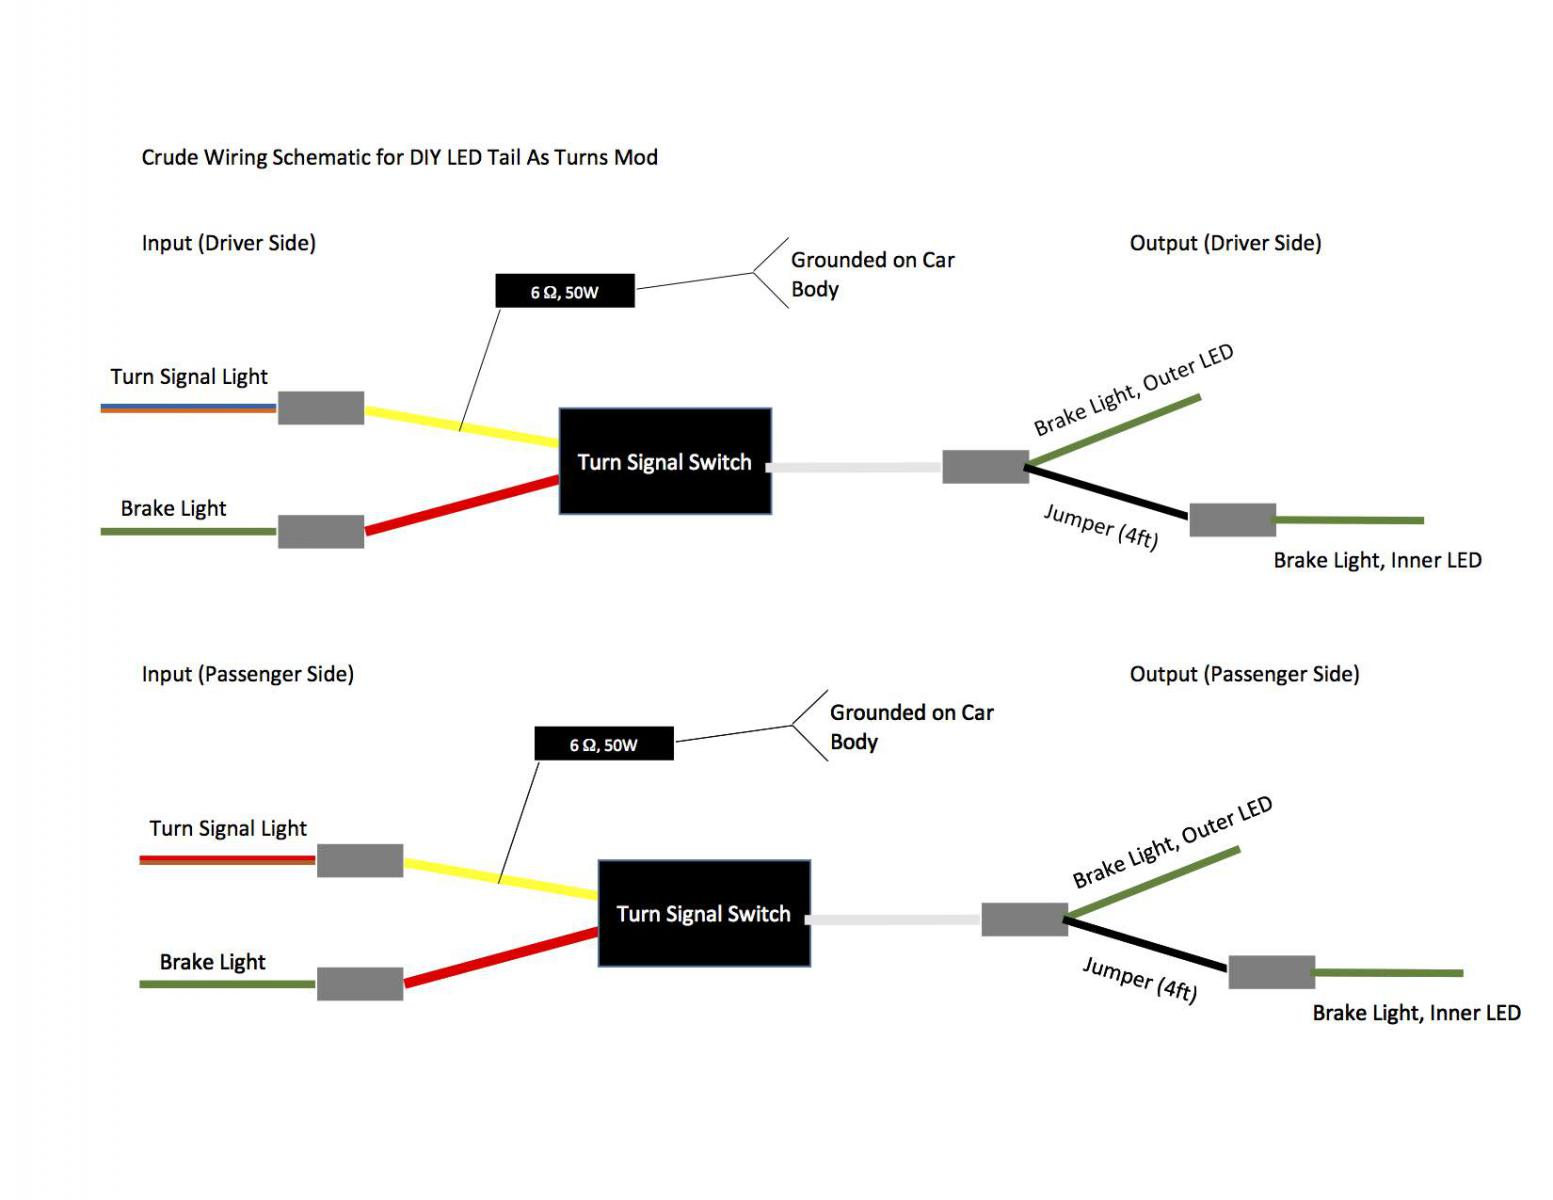 hight resolution of tailight as turn signal mod page 5 1996 ez go wiring diagram rxv gas wiring diagram